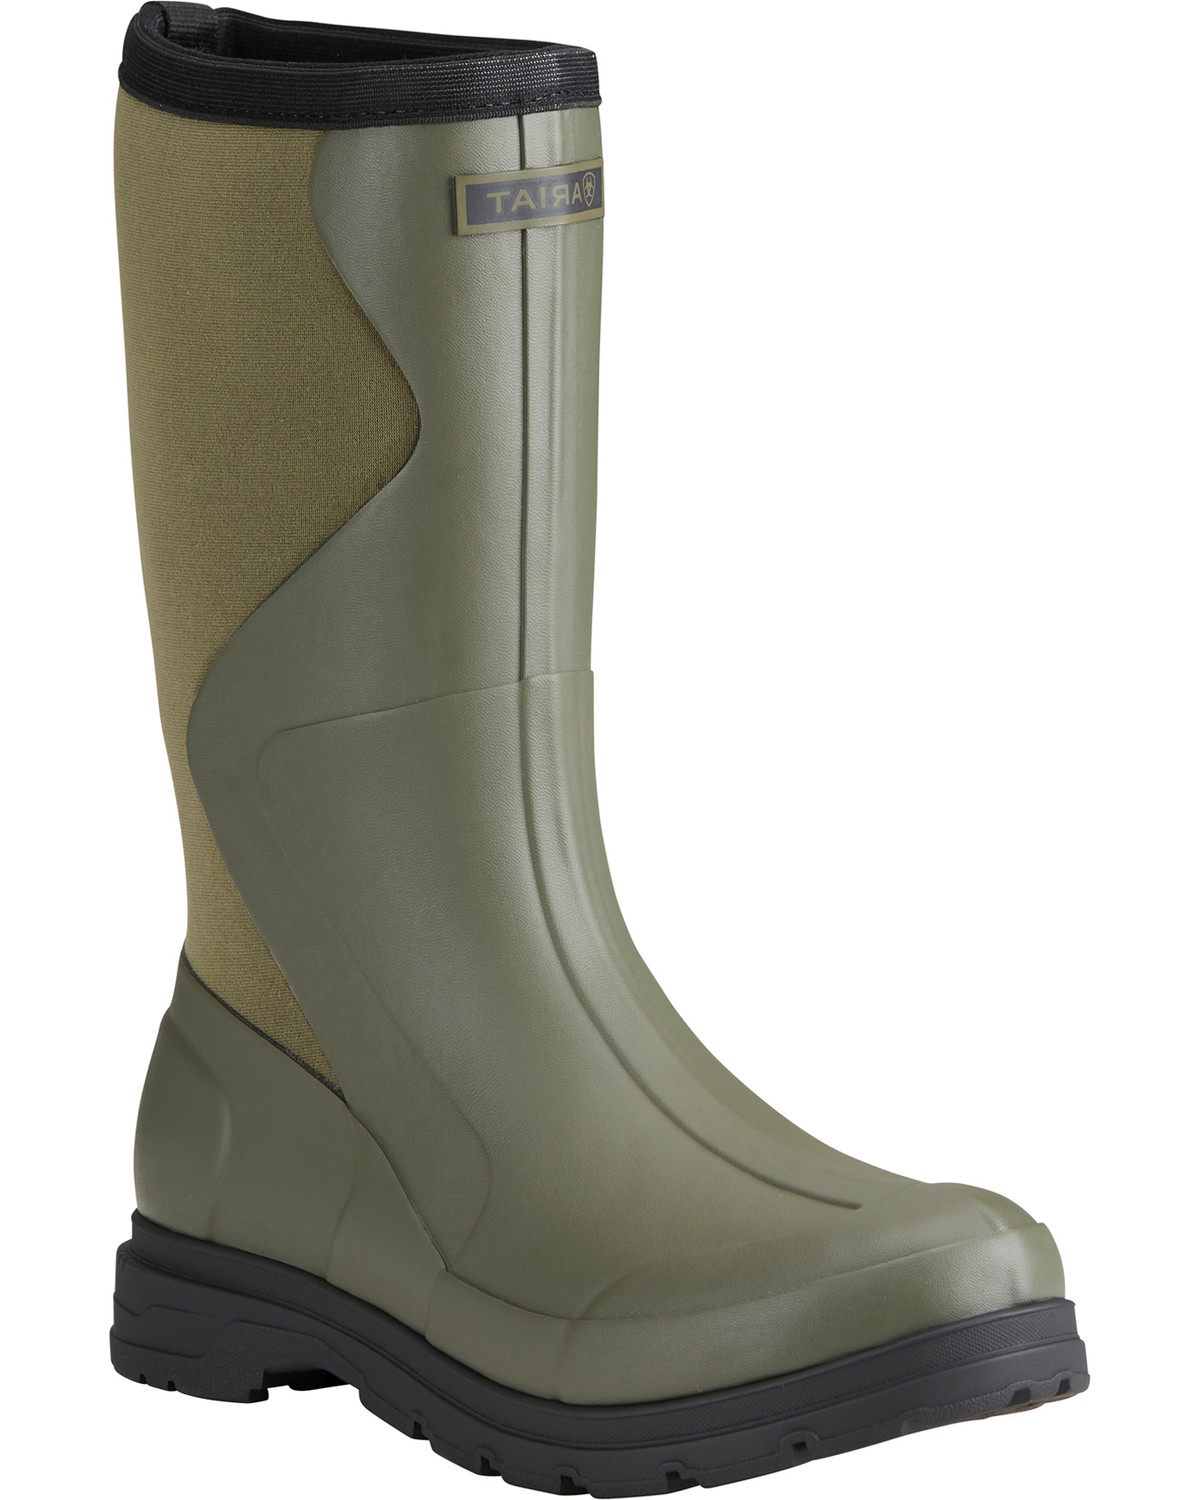 Ariat Women's Olive Springfield Rubber